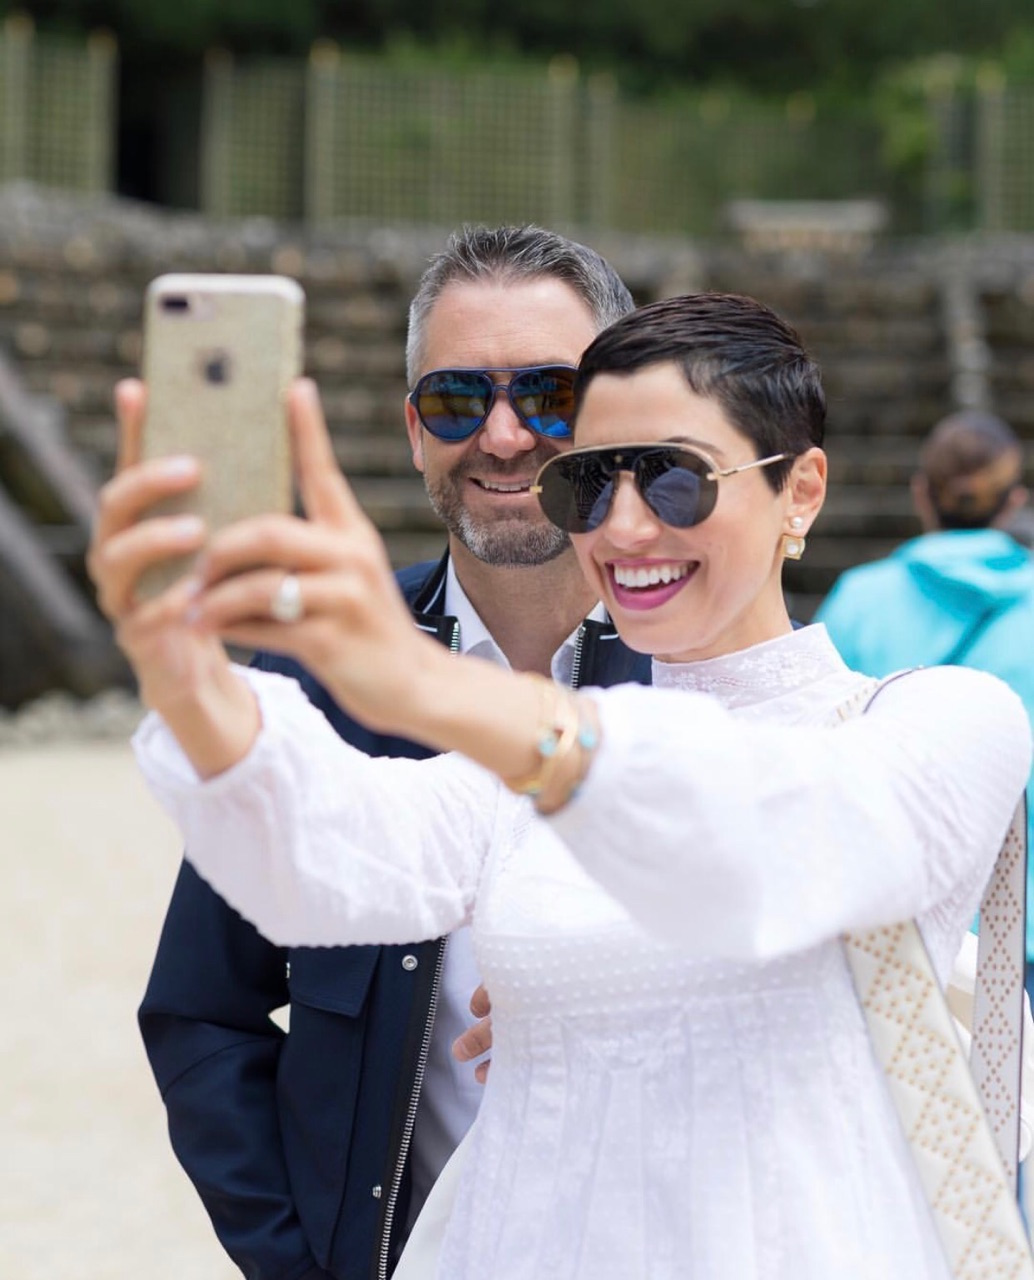 Chrisa Pappas and Dean Sioukas pose for a selfie at Versaille